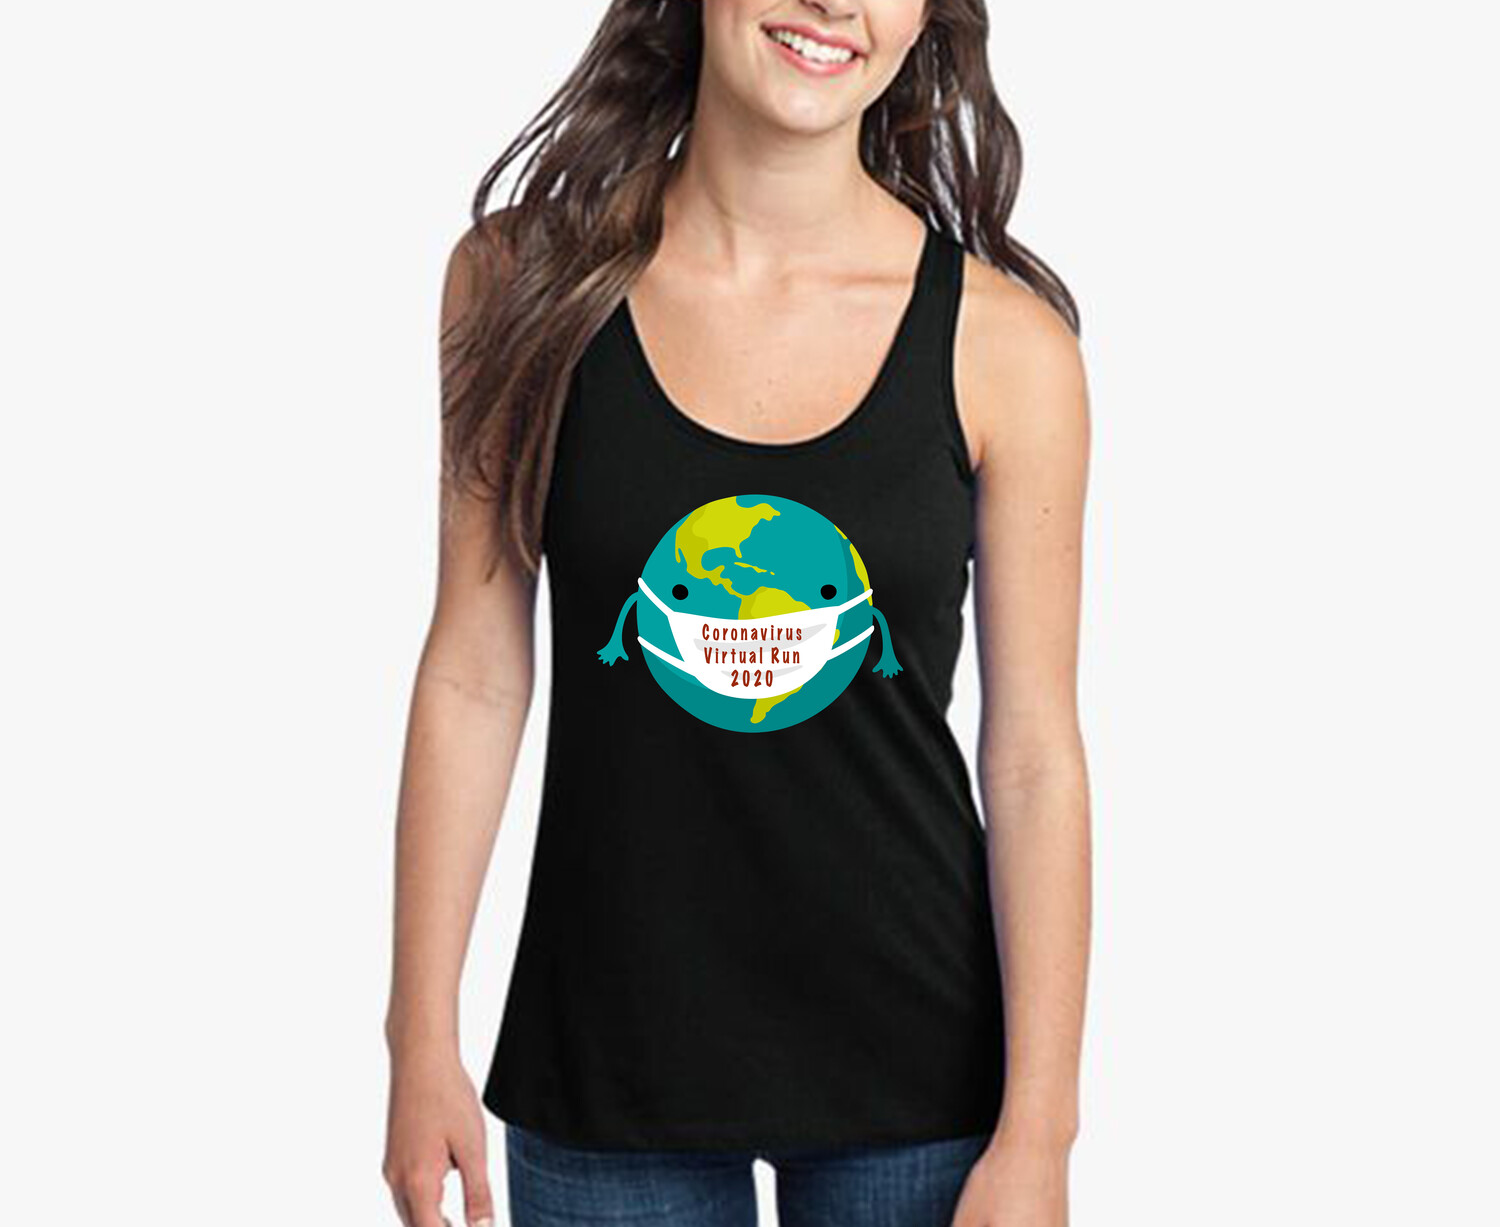 CORONAVIRUS VIRTUAL RUN FINISHER TANK TOP